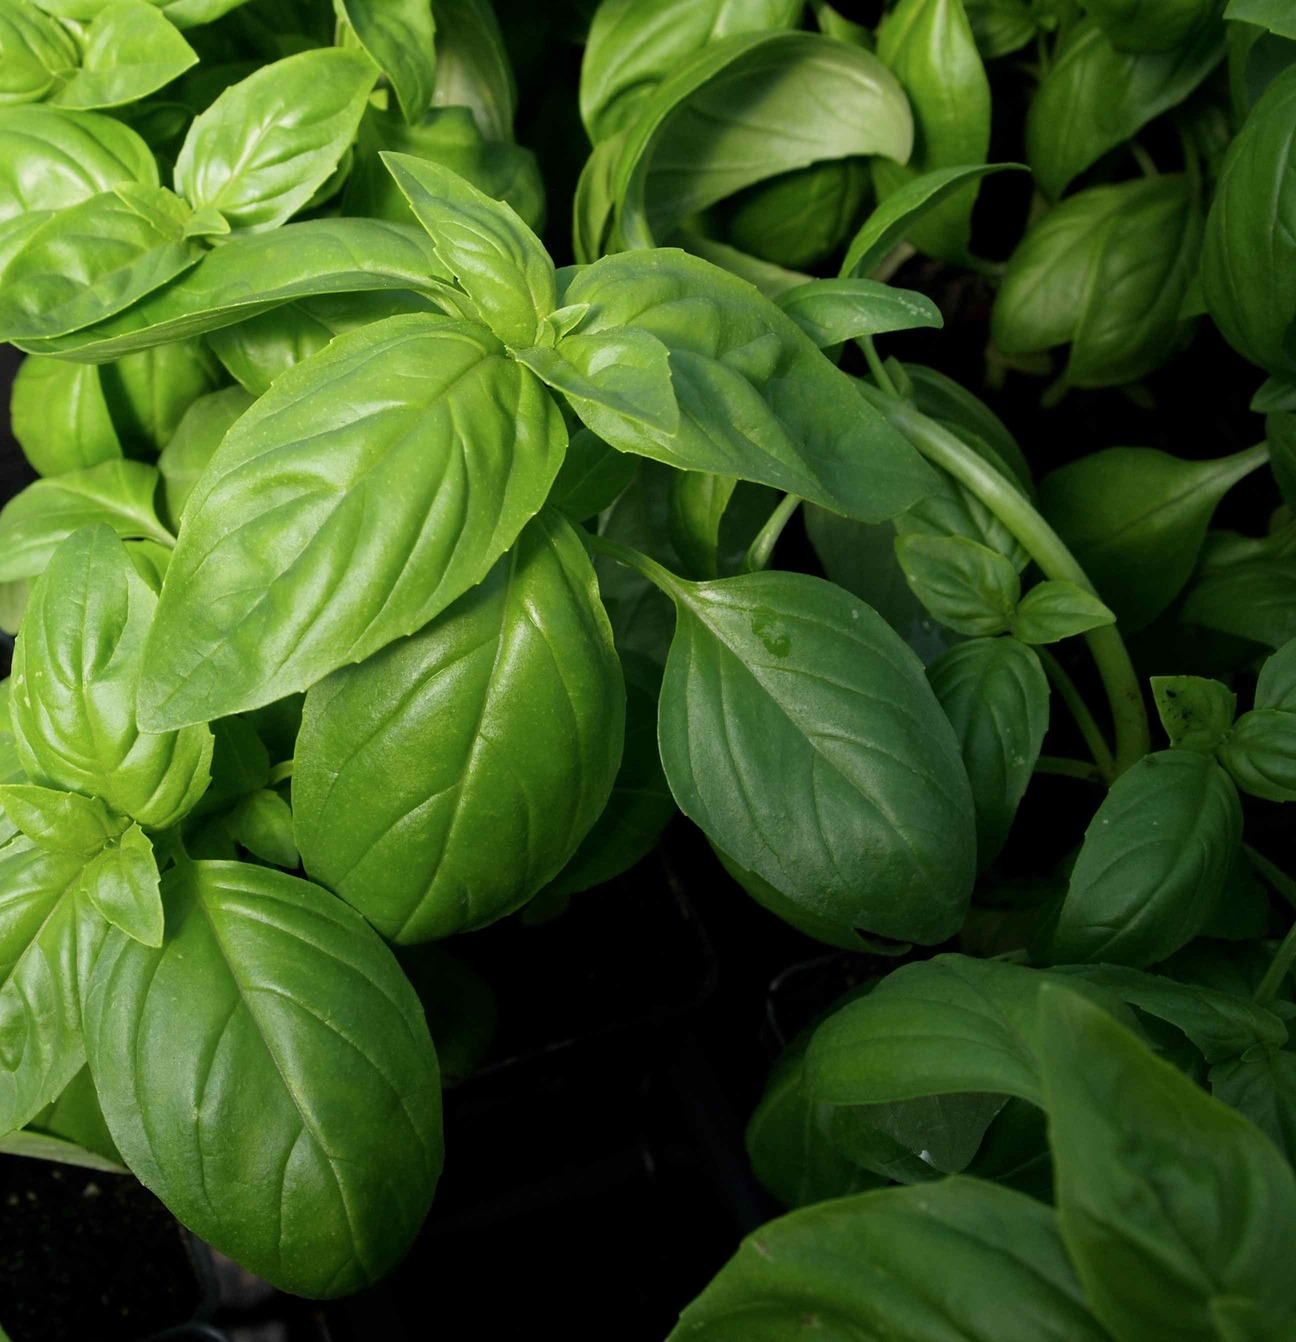 Basil was one of the glorious herbs available at plant sale